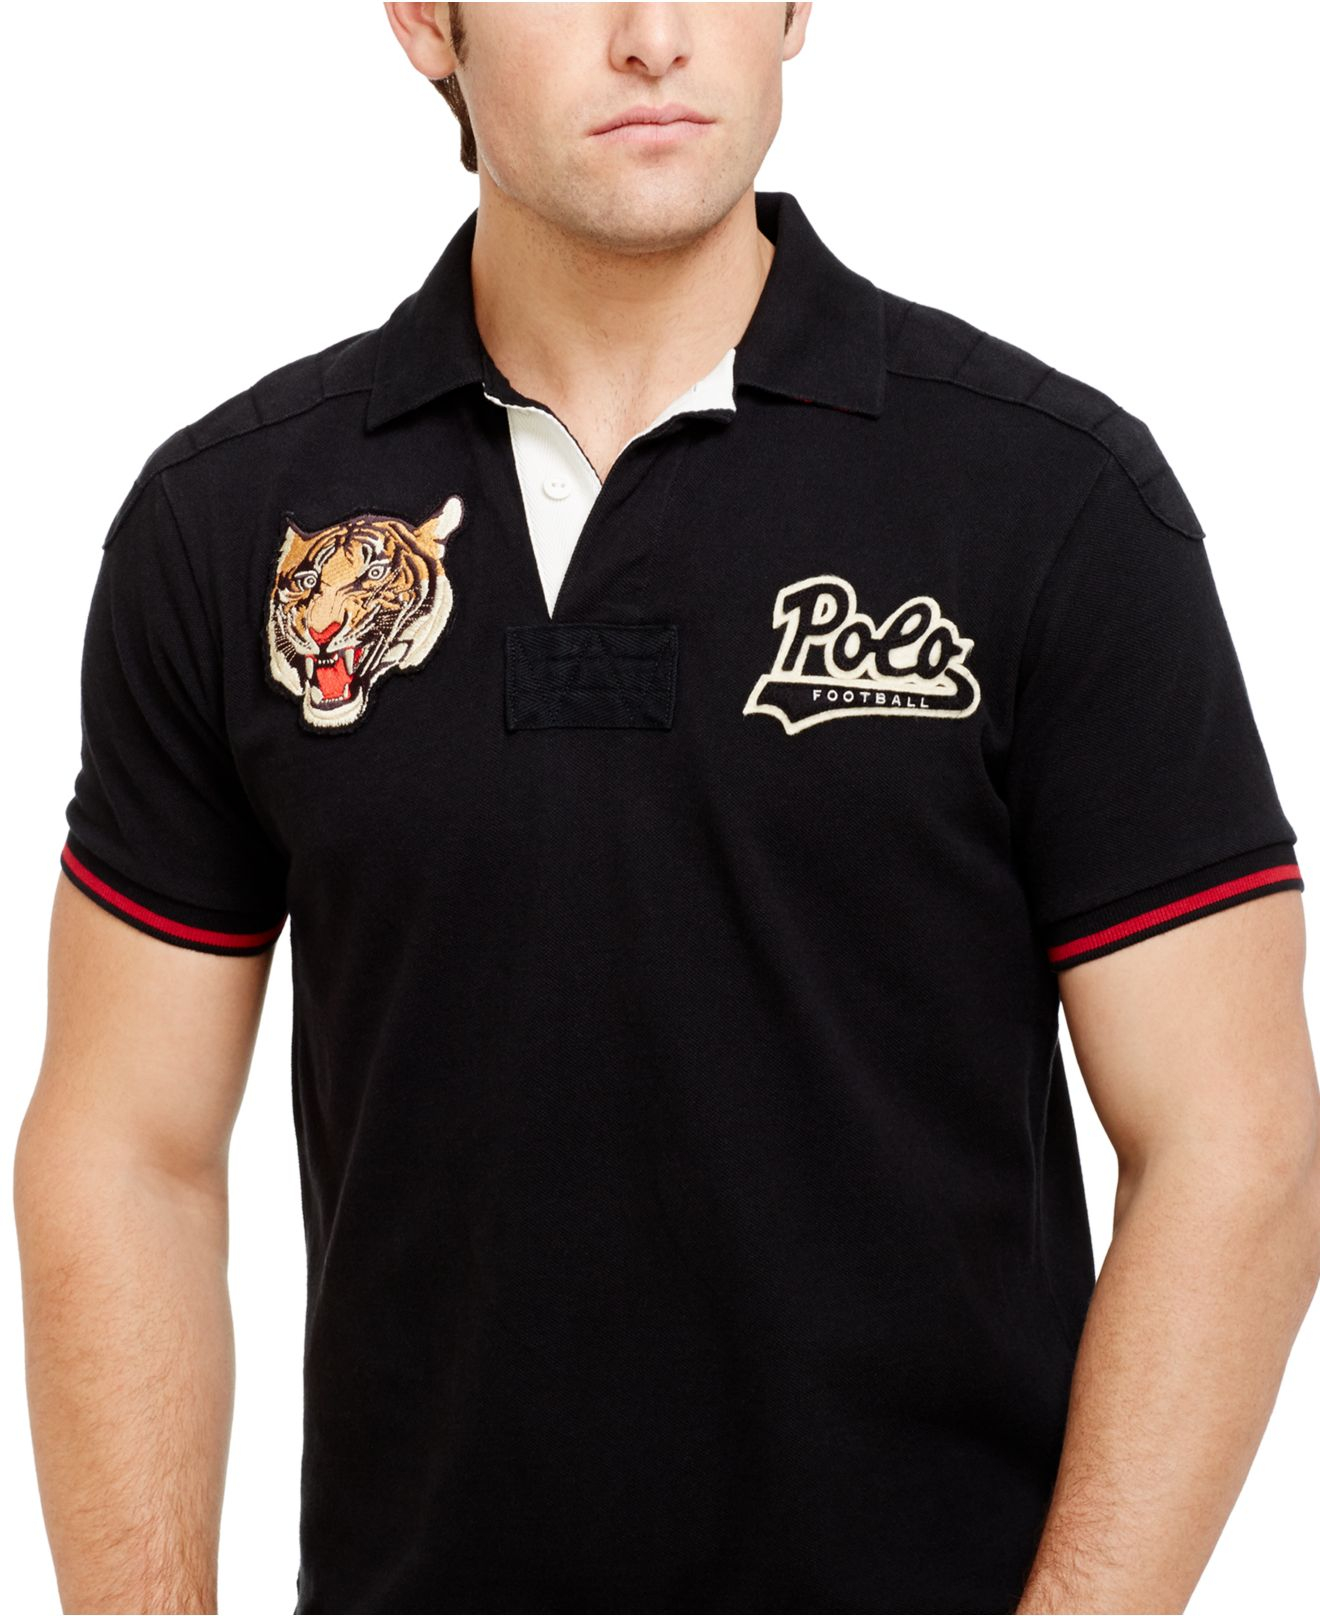 03a7894eb ... release date lyst polo ralph lauren custom fit tiger head polo in black  for men 3fdcc